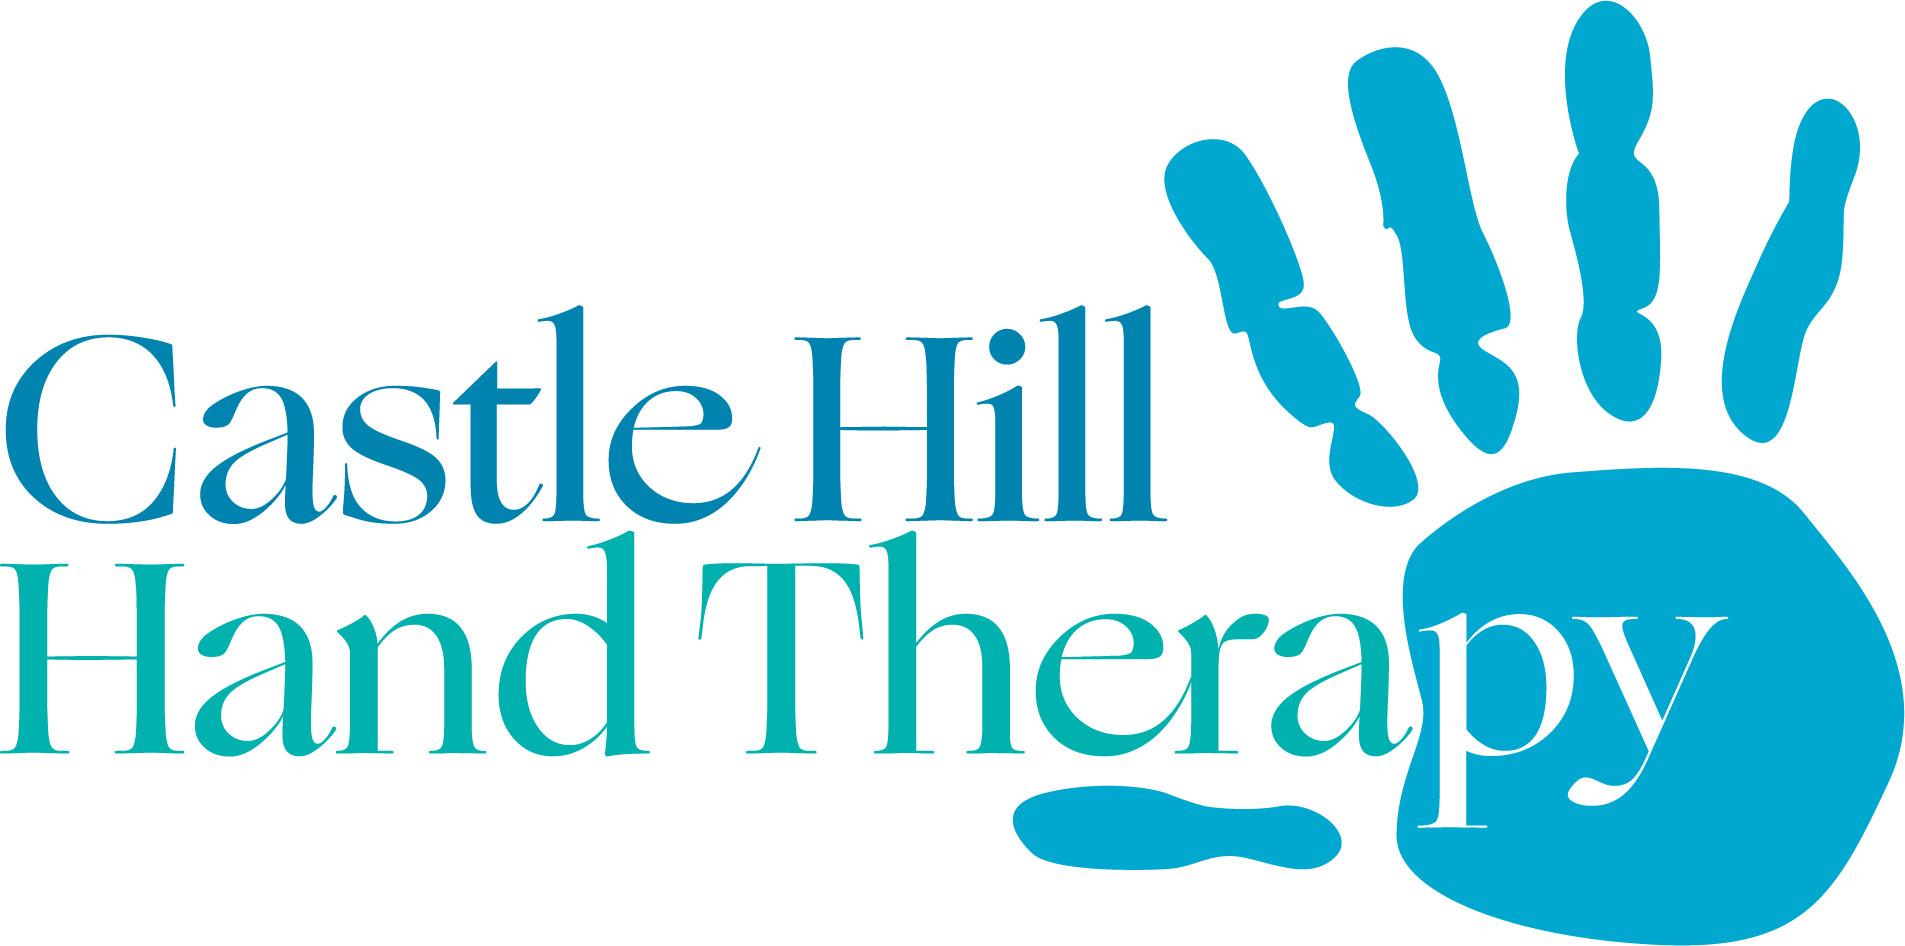 Castle Hill Hand Therapy